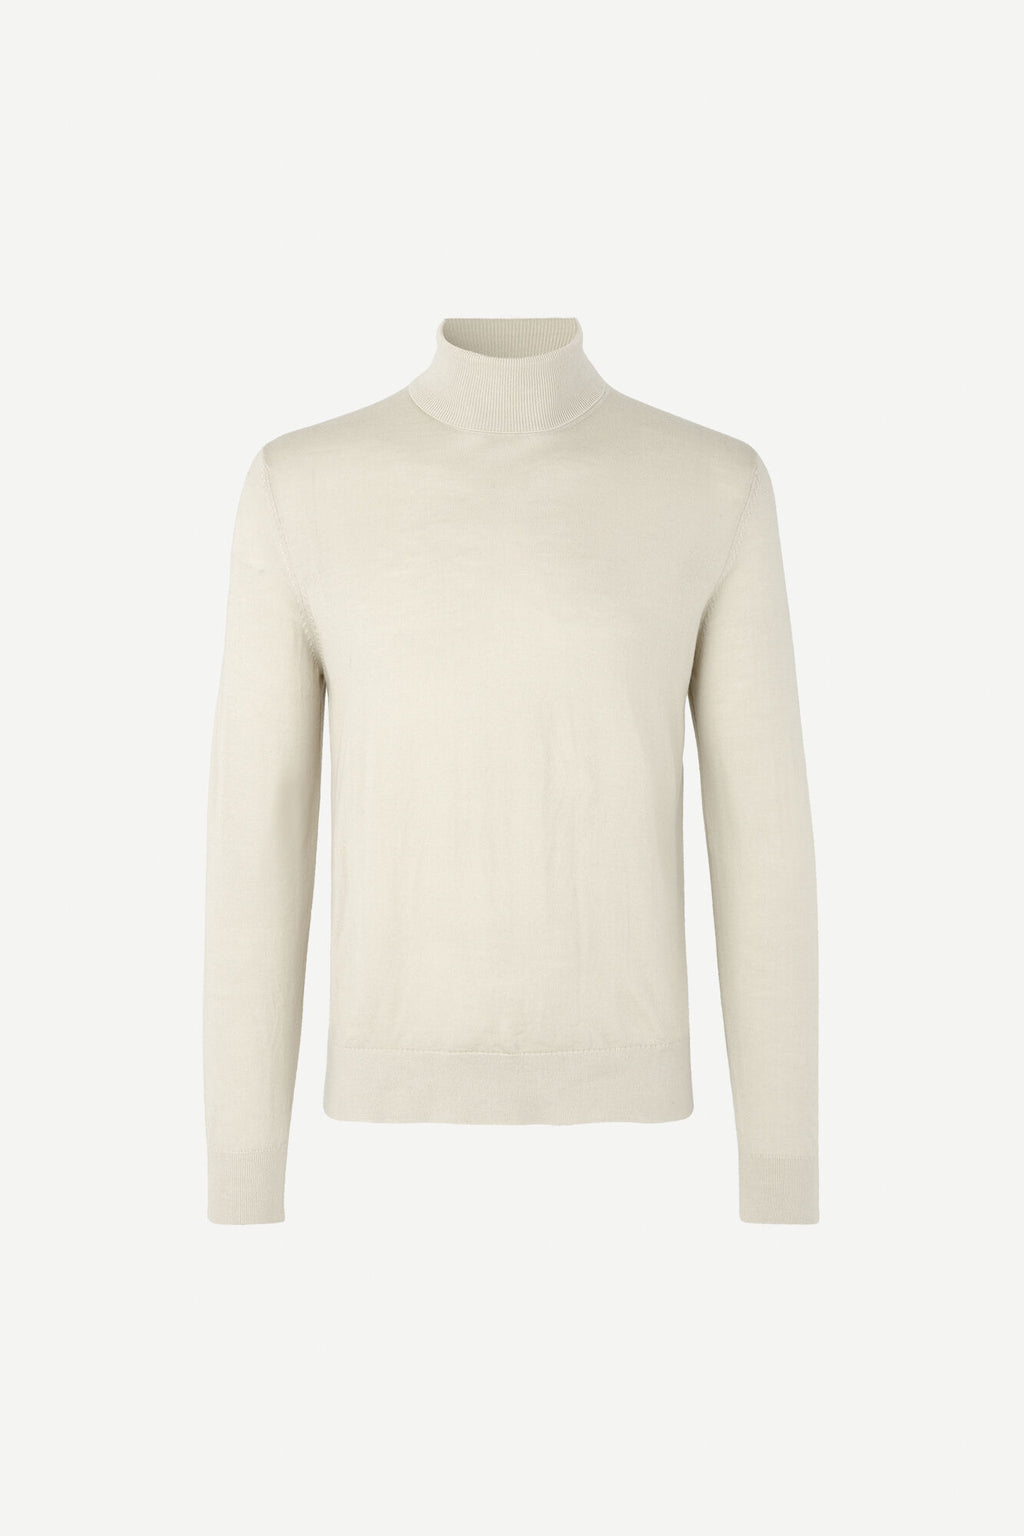 Samsoe samsoe flemming turtle neck clear cream